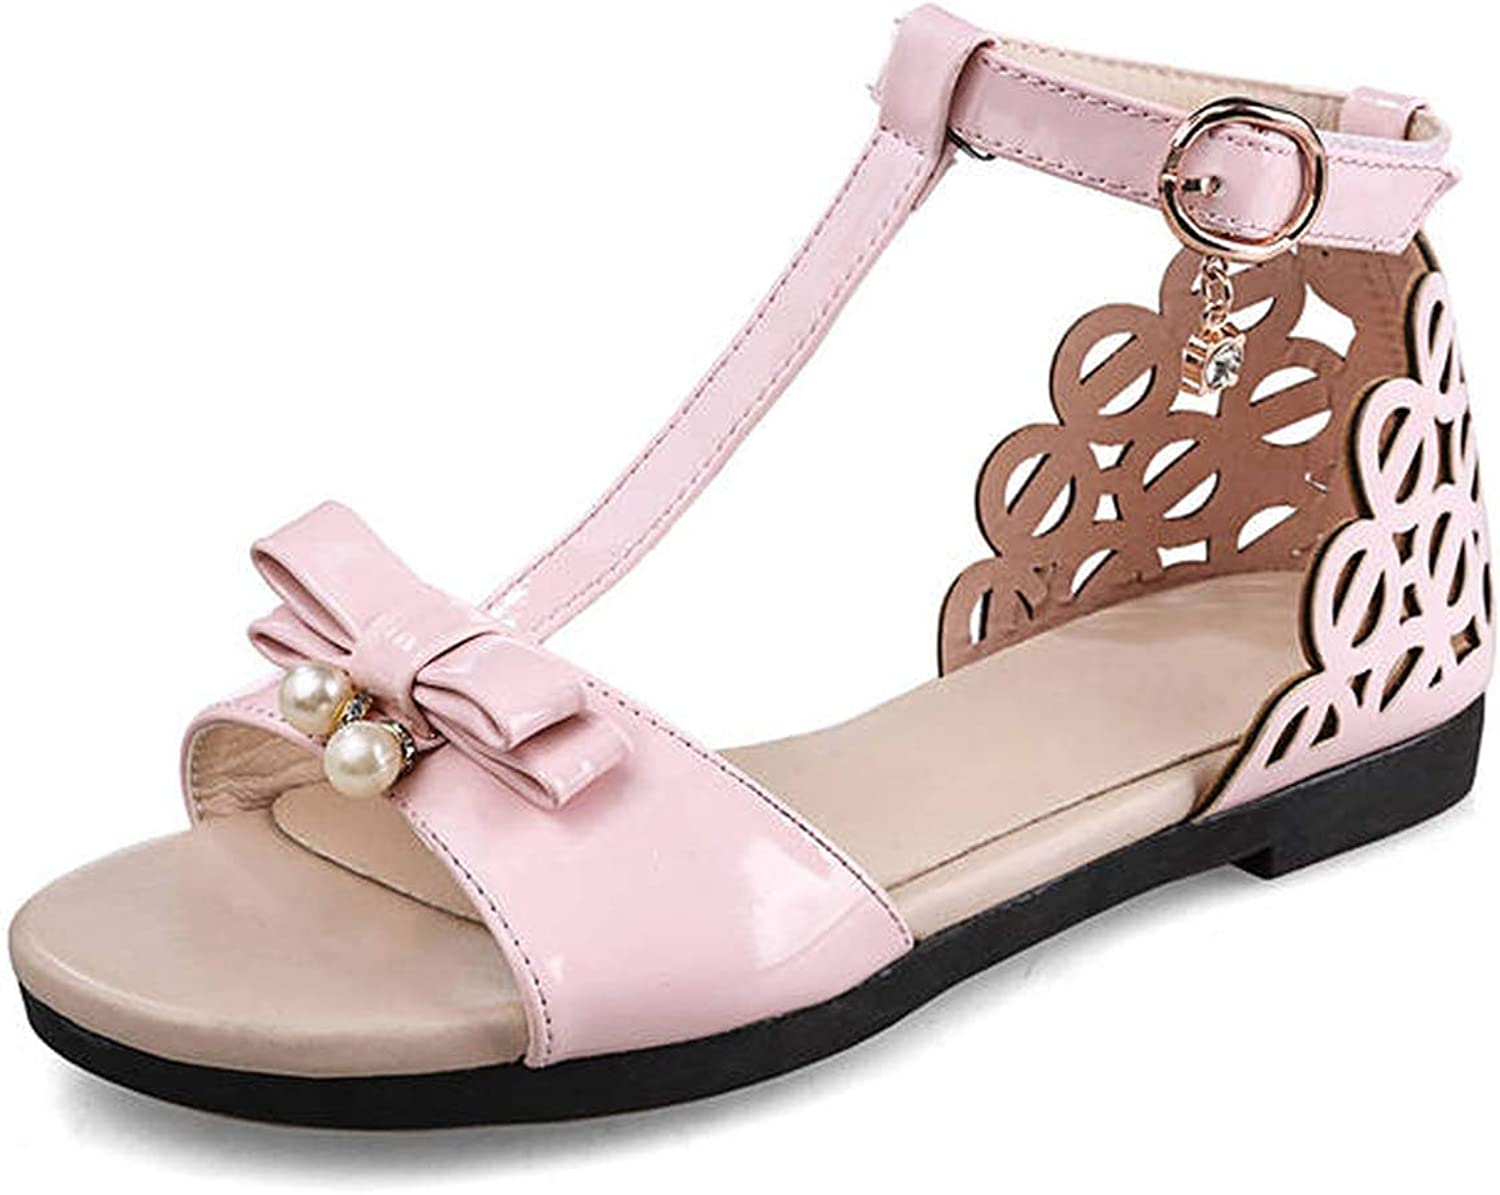 Lonely Store 2019 Women Sandals Bowknot Sweet Casual Ladies Buckle Hollow Out Summer Comfortable Flat shoes